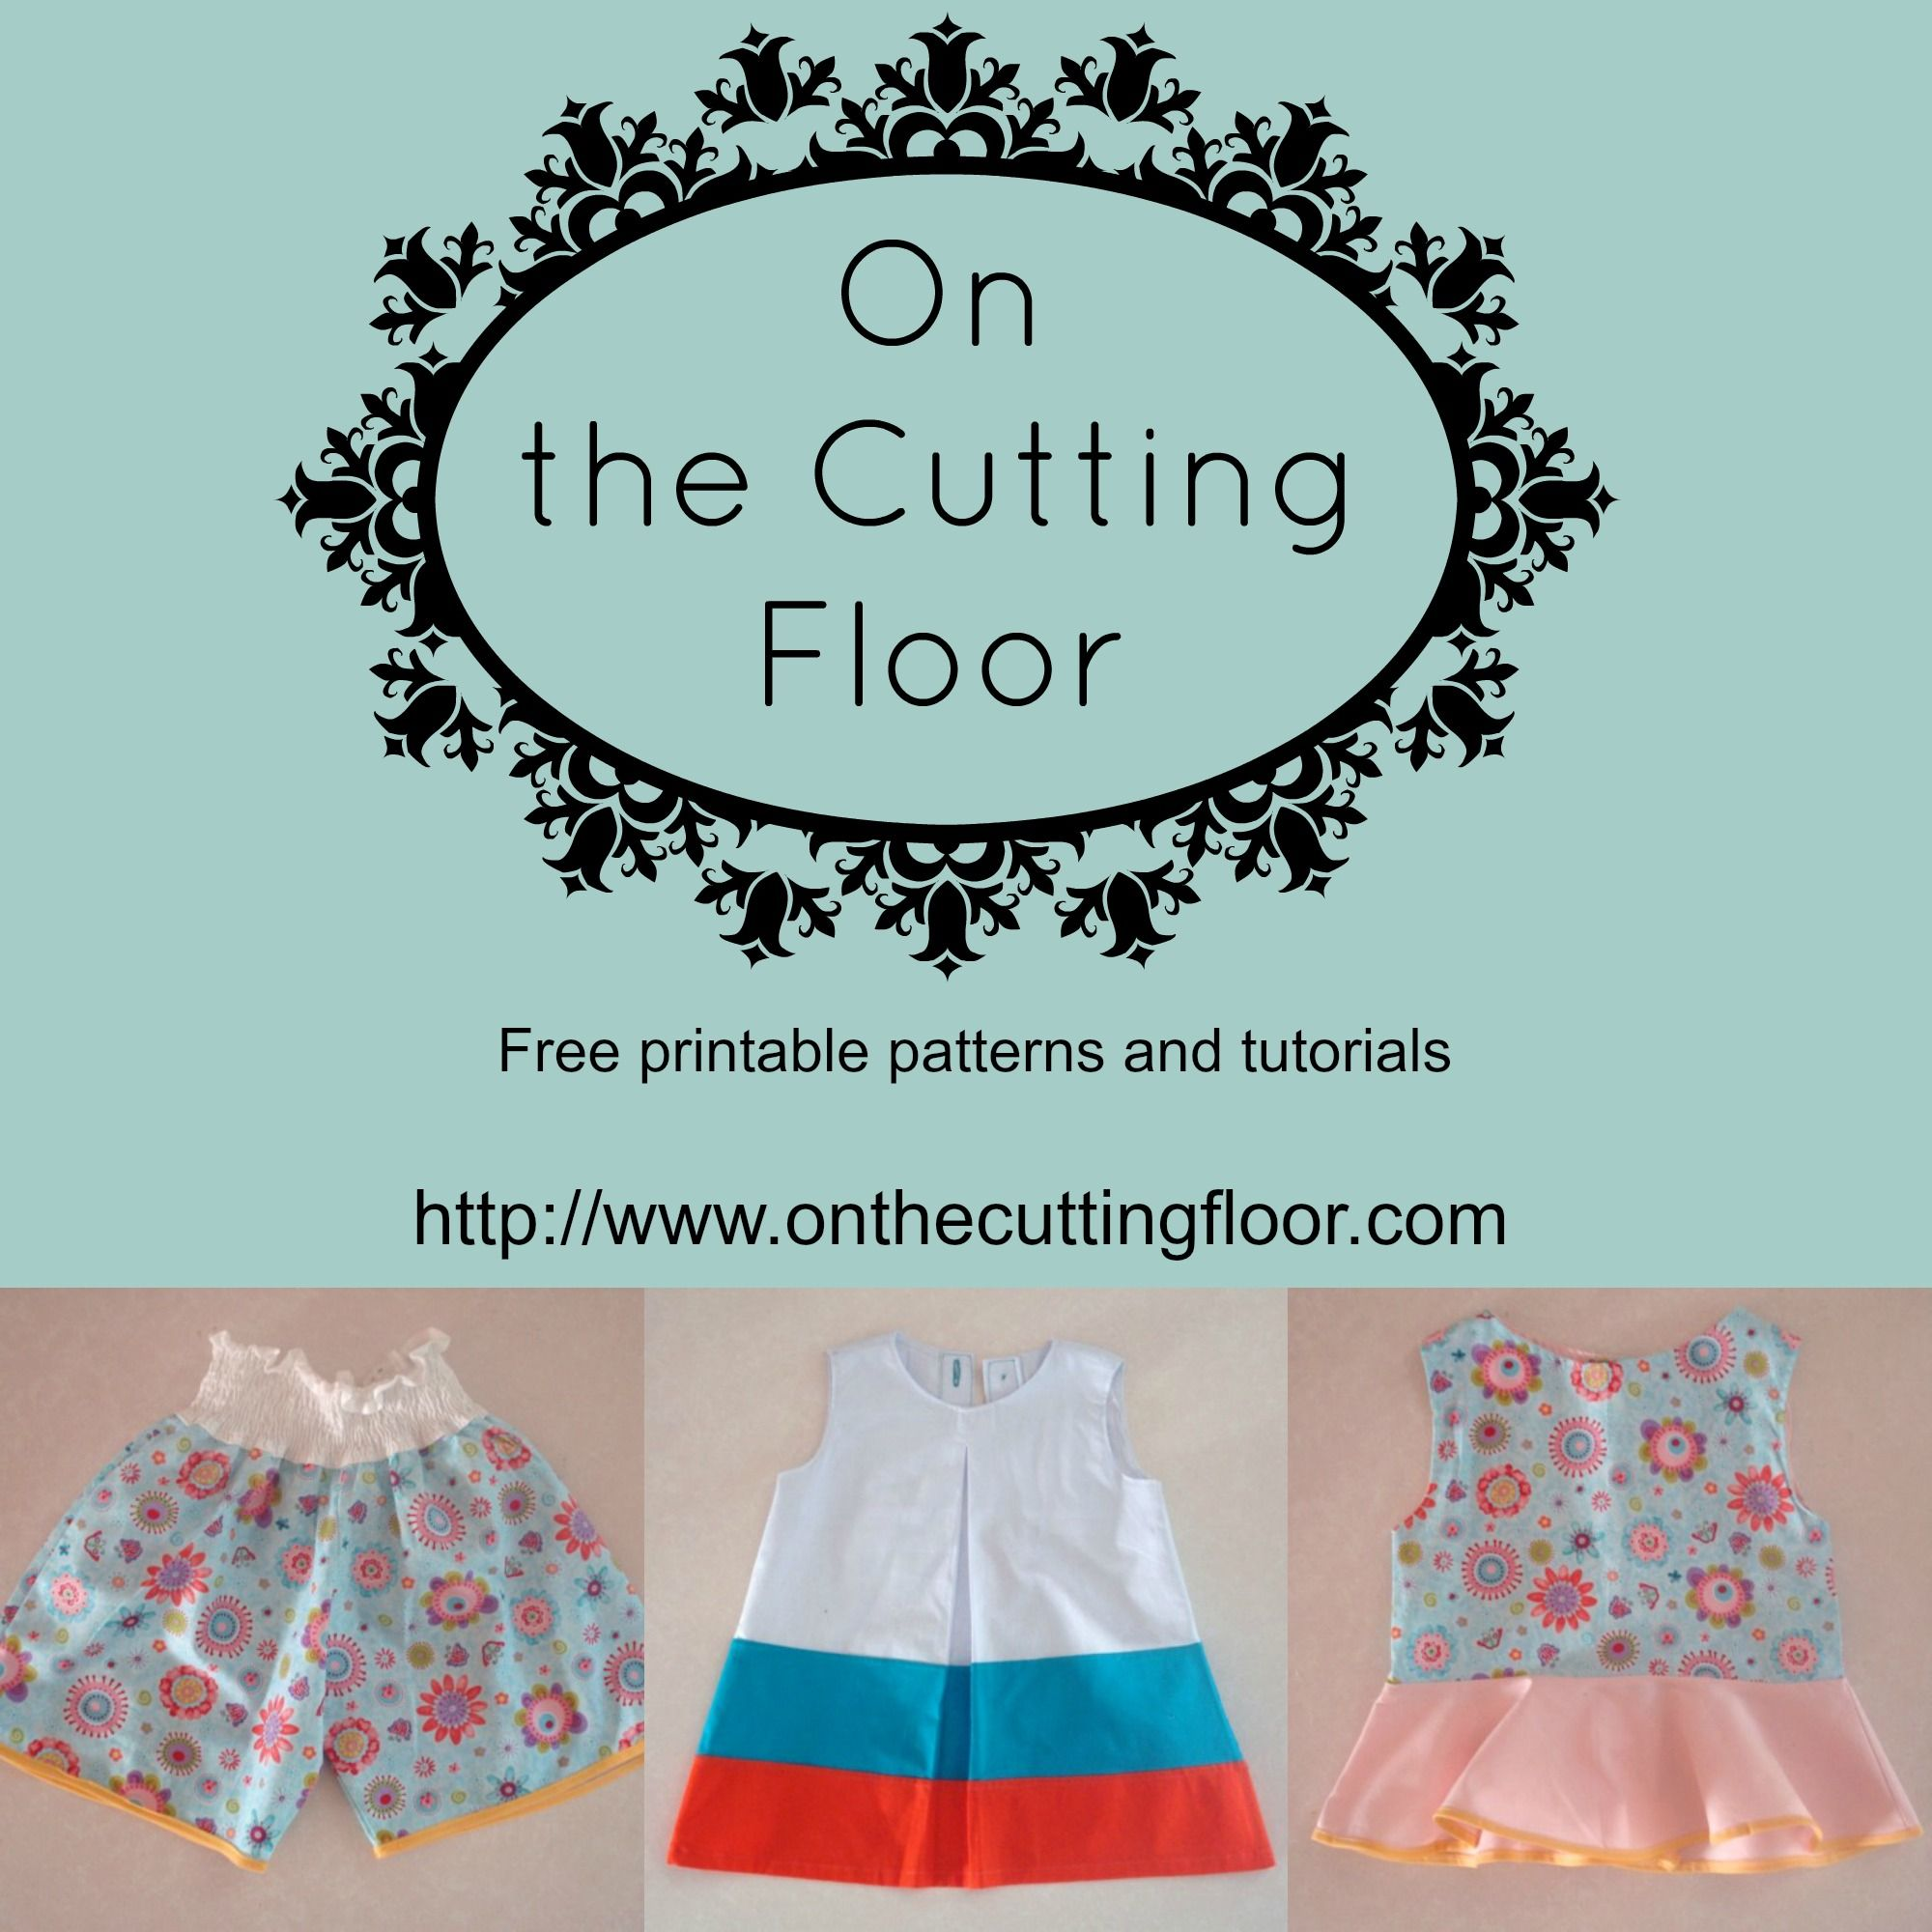 Non serger techniques for woven fabrics from onthecuttingfloor free sewing patterns and tutorials on the cutting floor jeuxipadfo Choice Image